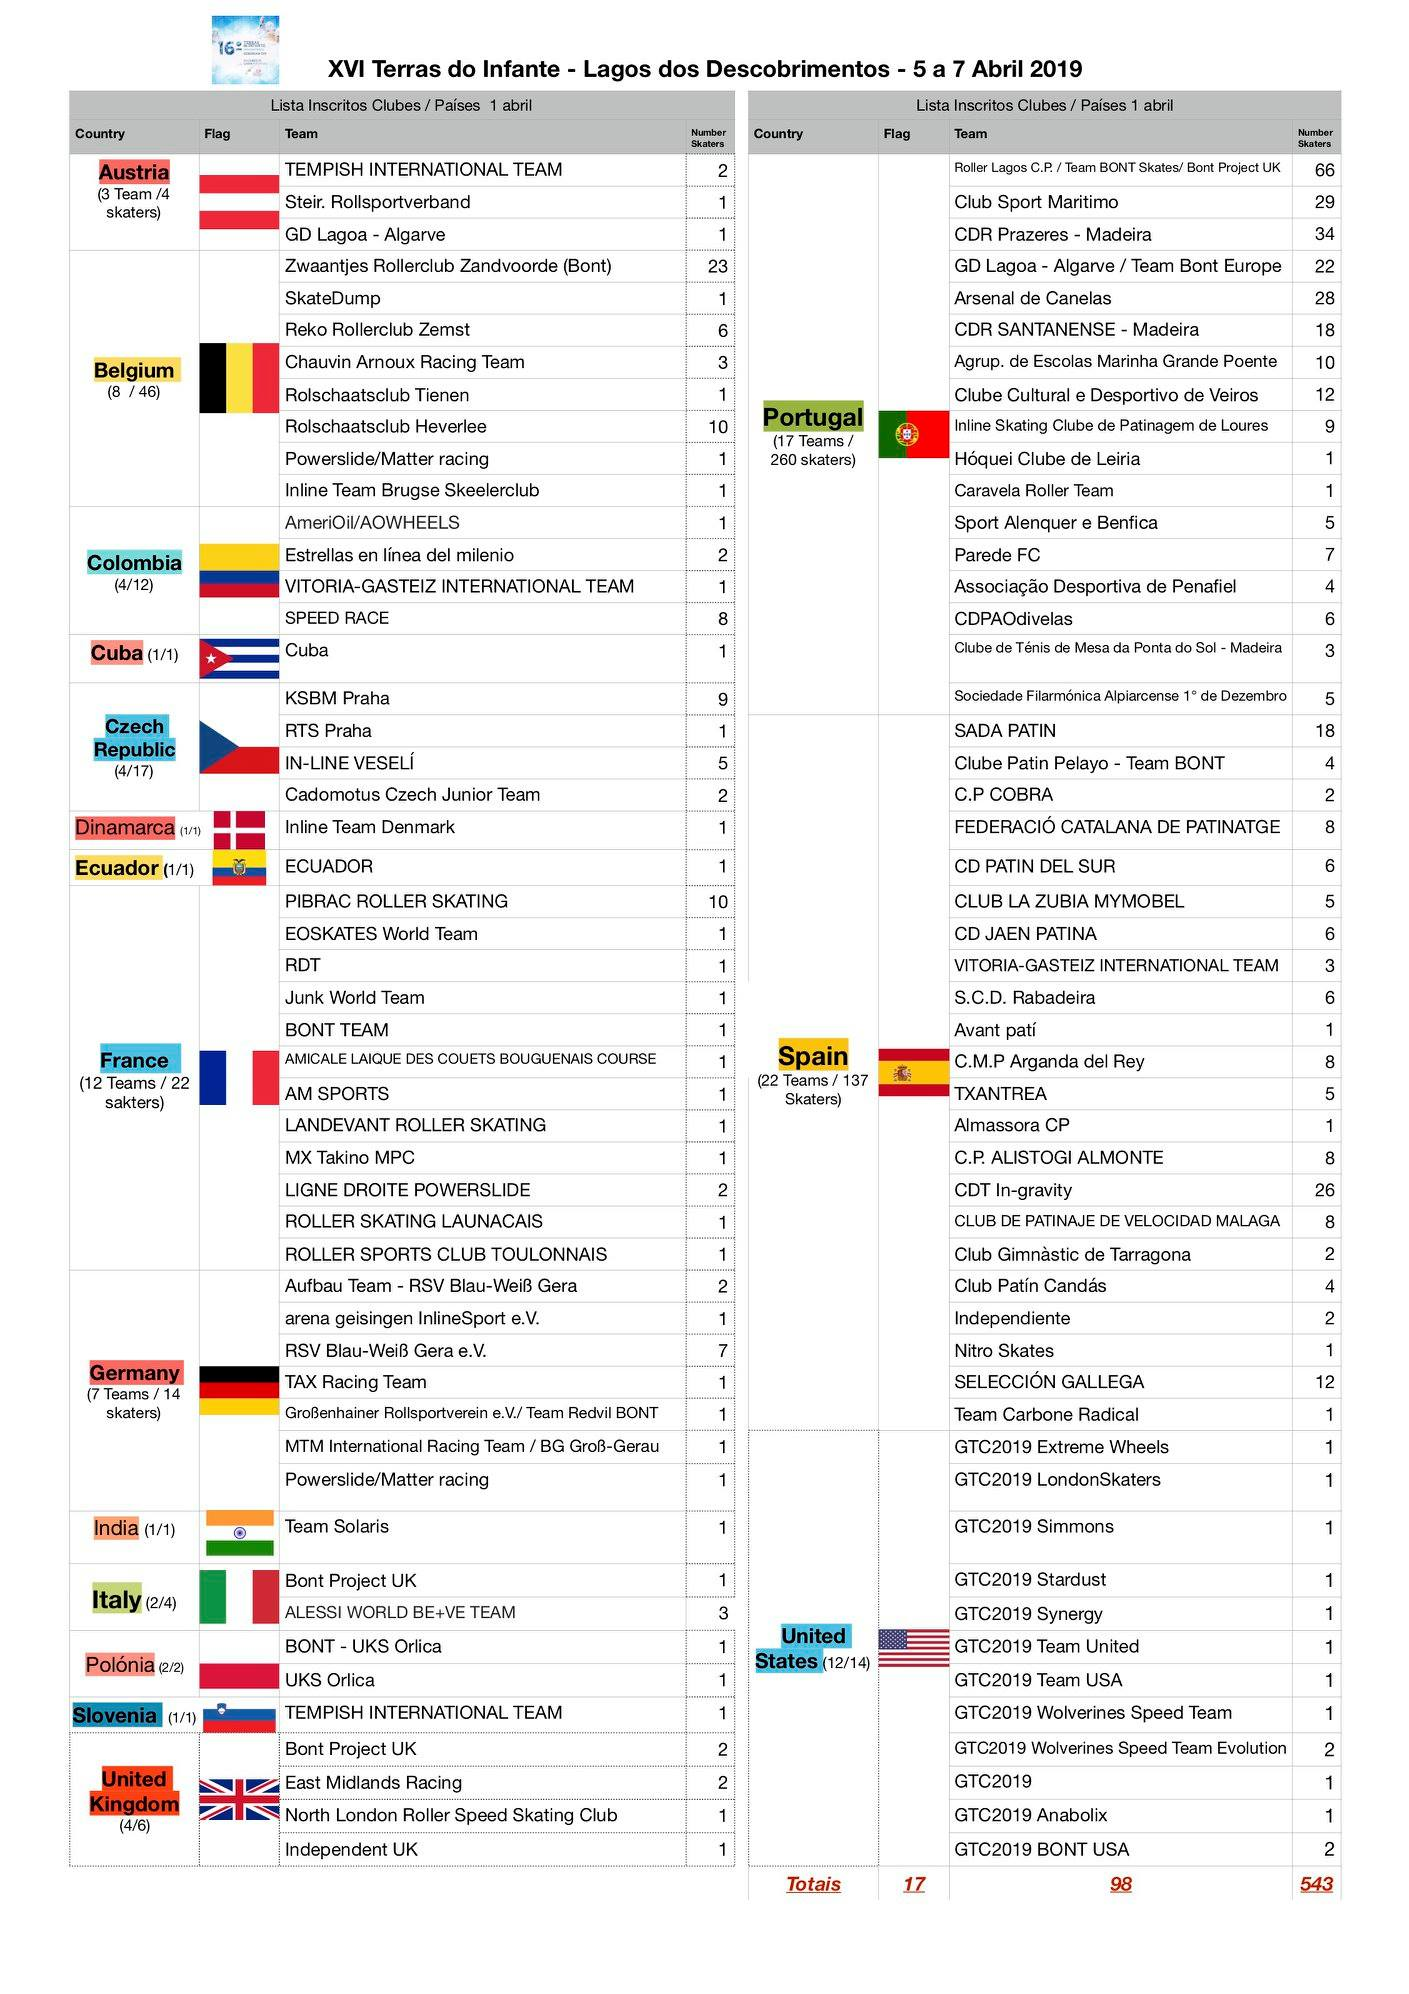 17 countries present in the 16th edition of terras do infante 17 Countries present in the 16th Edition of Terras do Infante 55842811 1080535658798337 5851916378436534272 o